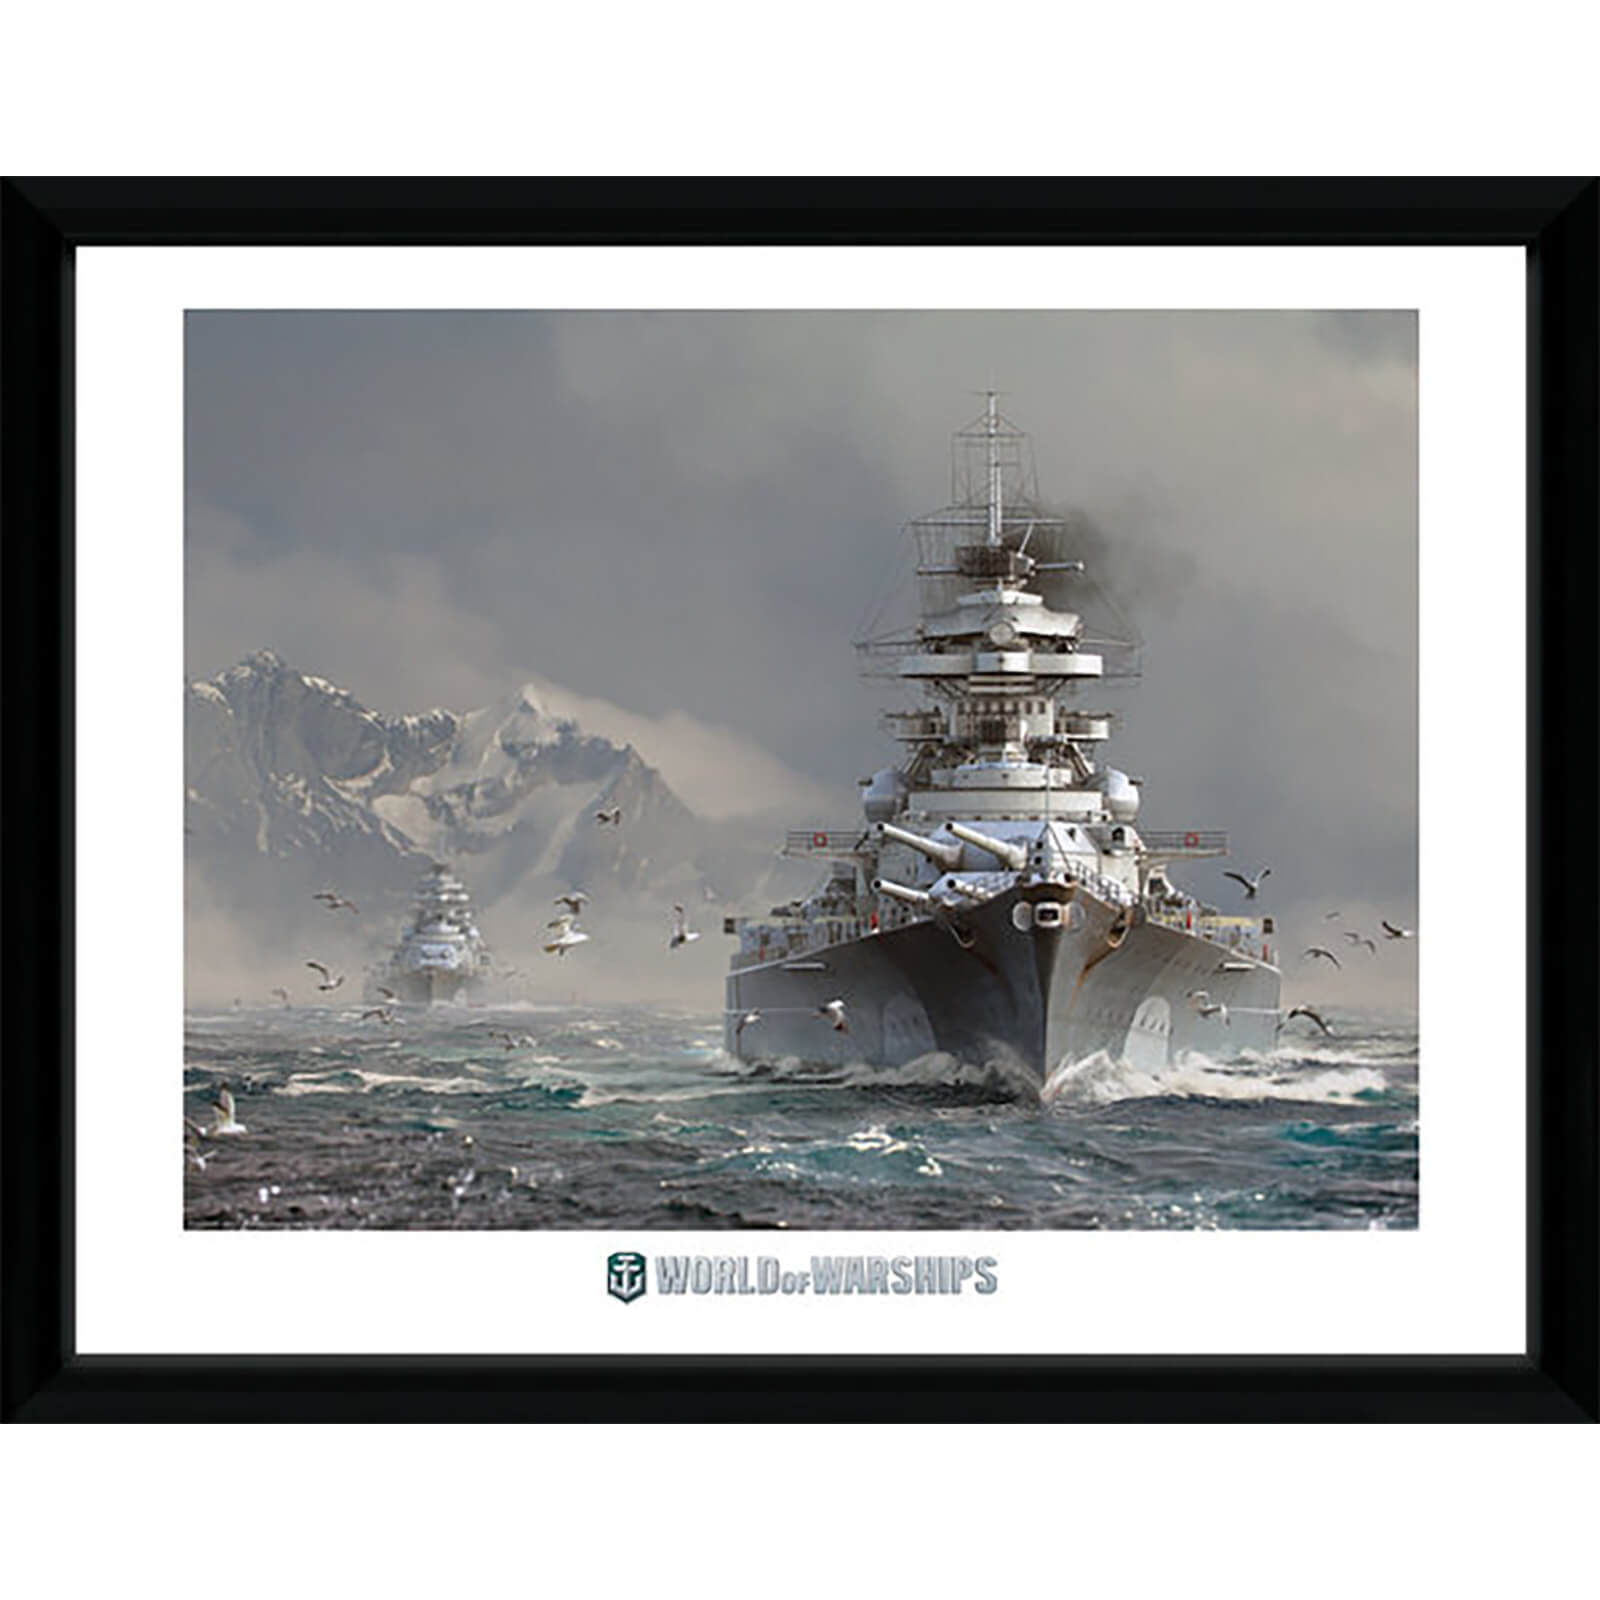 World of Warships Bismark 2 - 16 x 12 Inches Framed Photograph